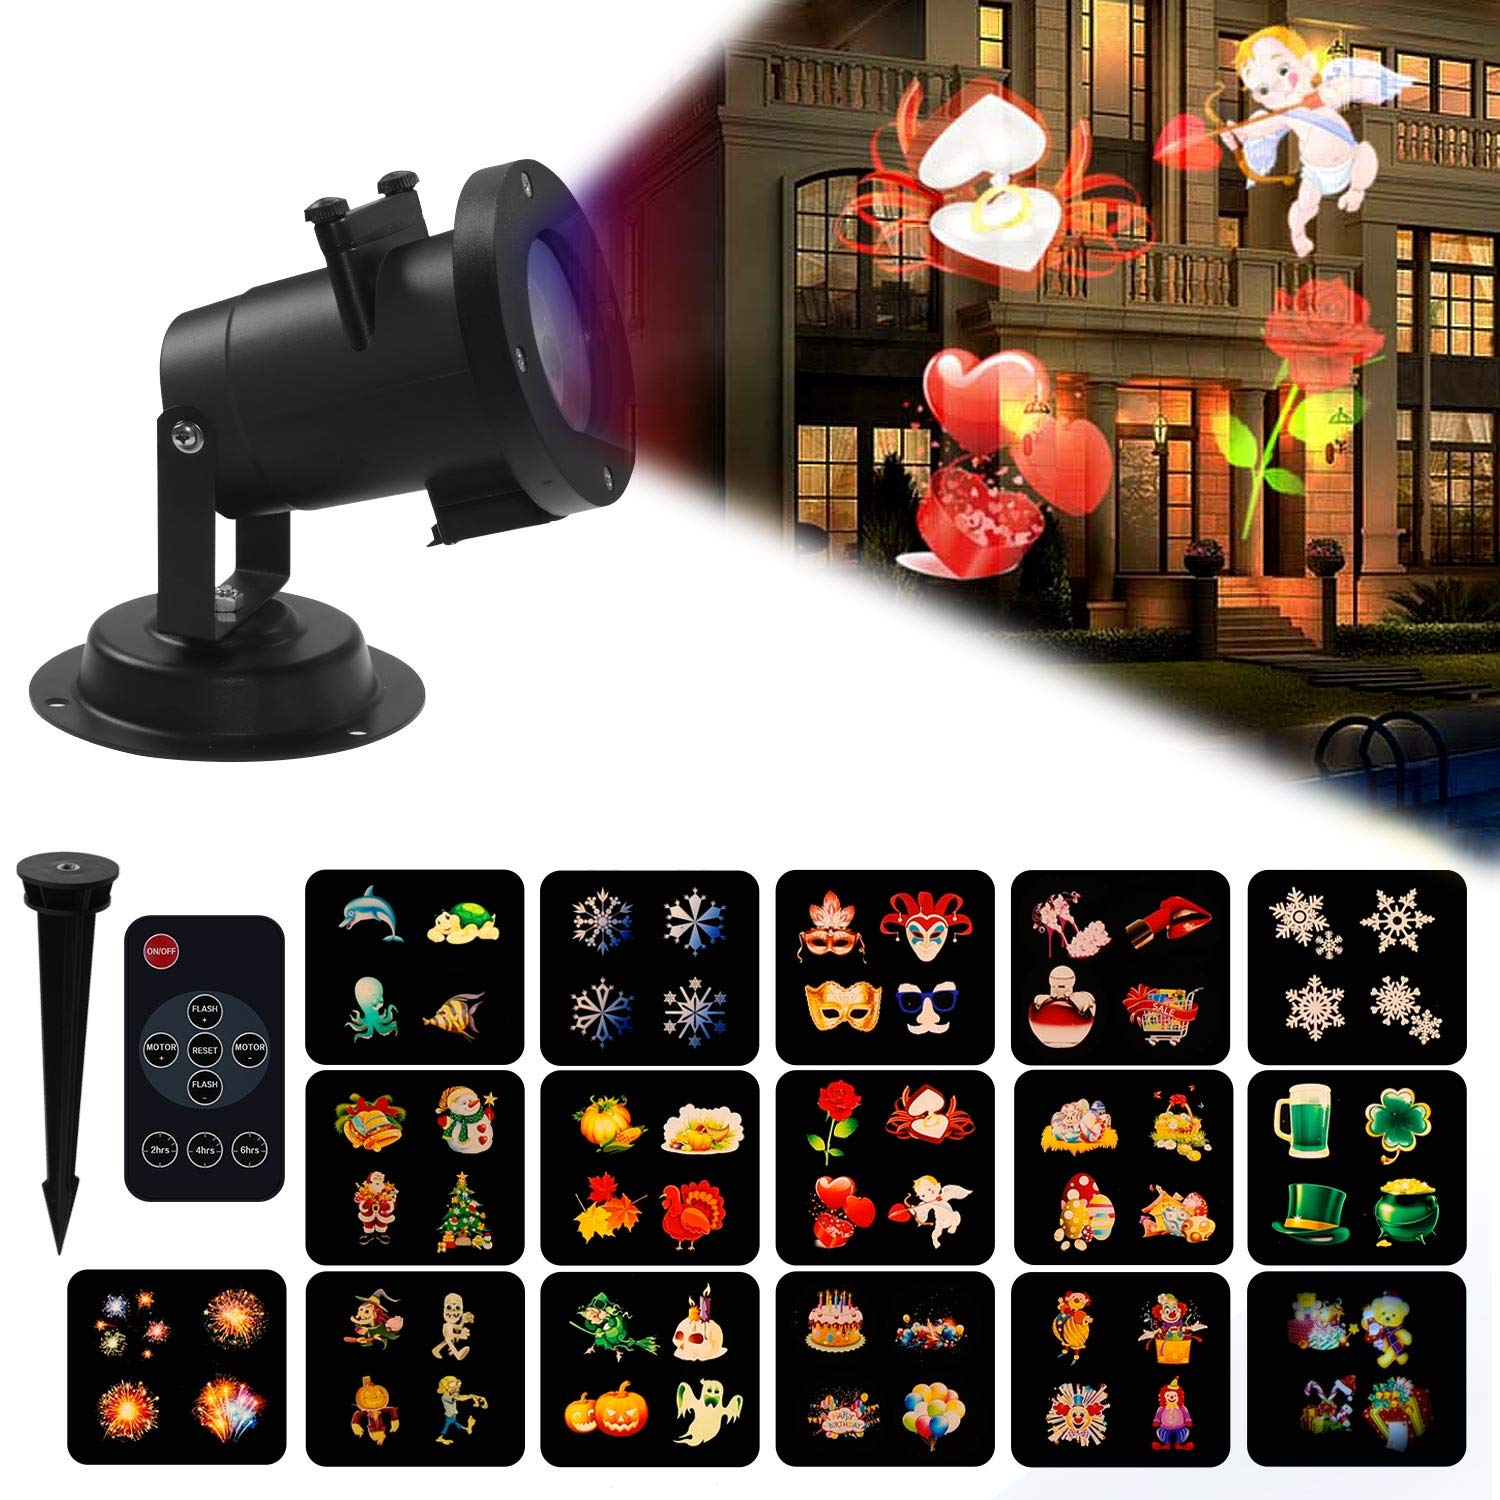 Projector Lamp 16 Slides Projection Light with Remote Control, Moving LED Patterns, Waterproof Decorative Outdoor&Indoor Lighting Birthday, Party